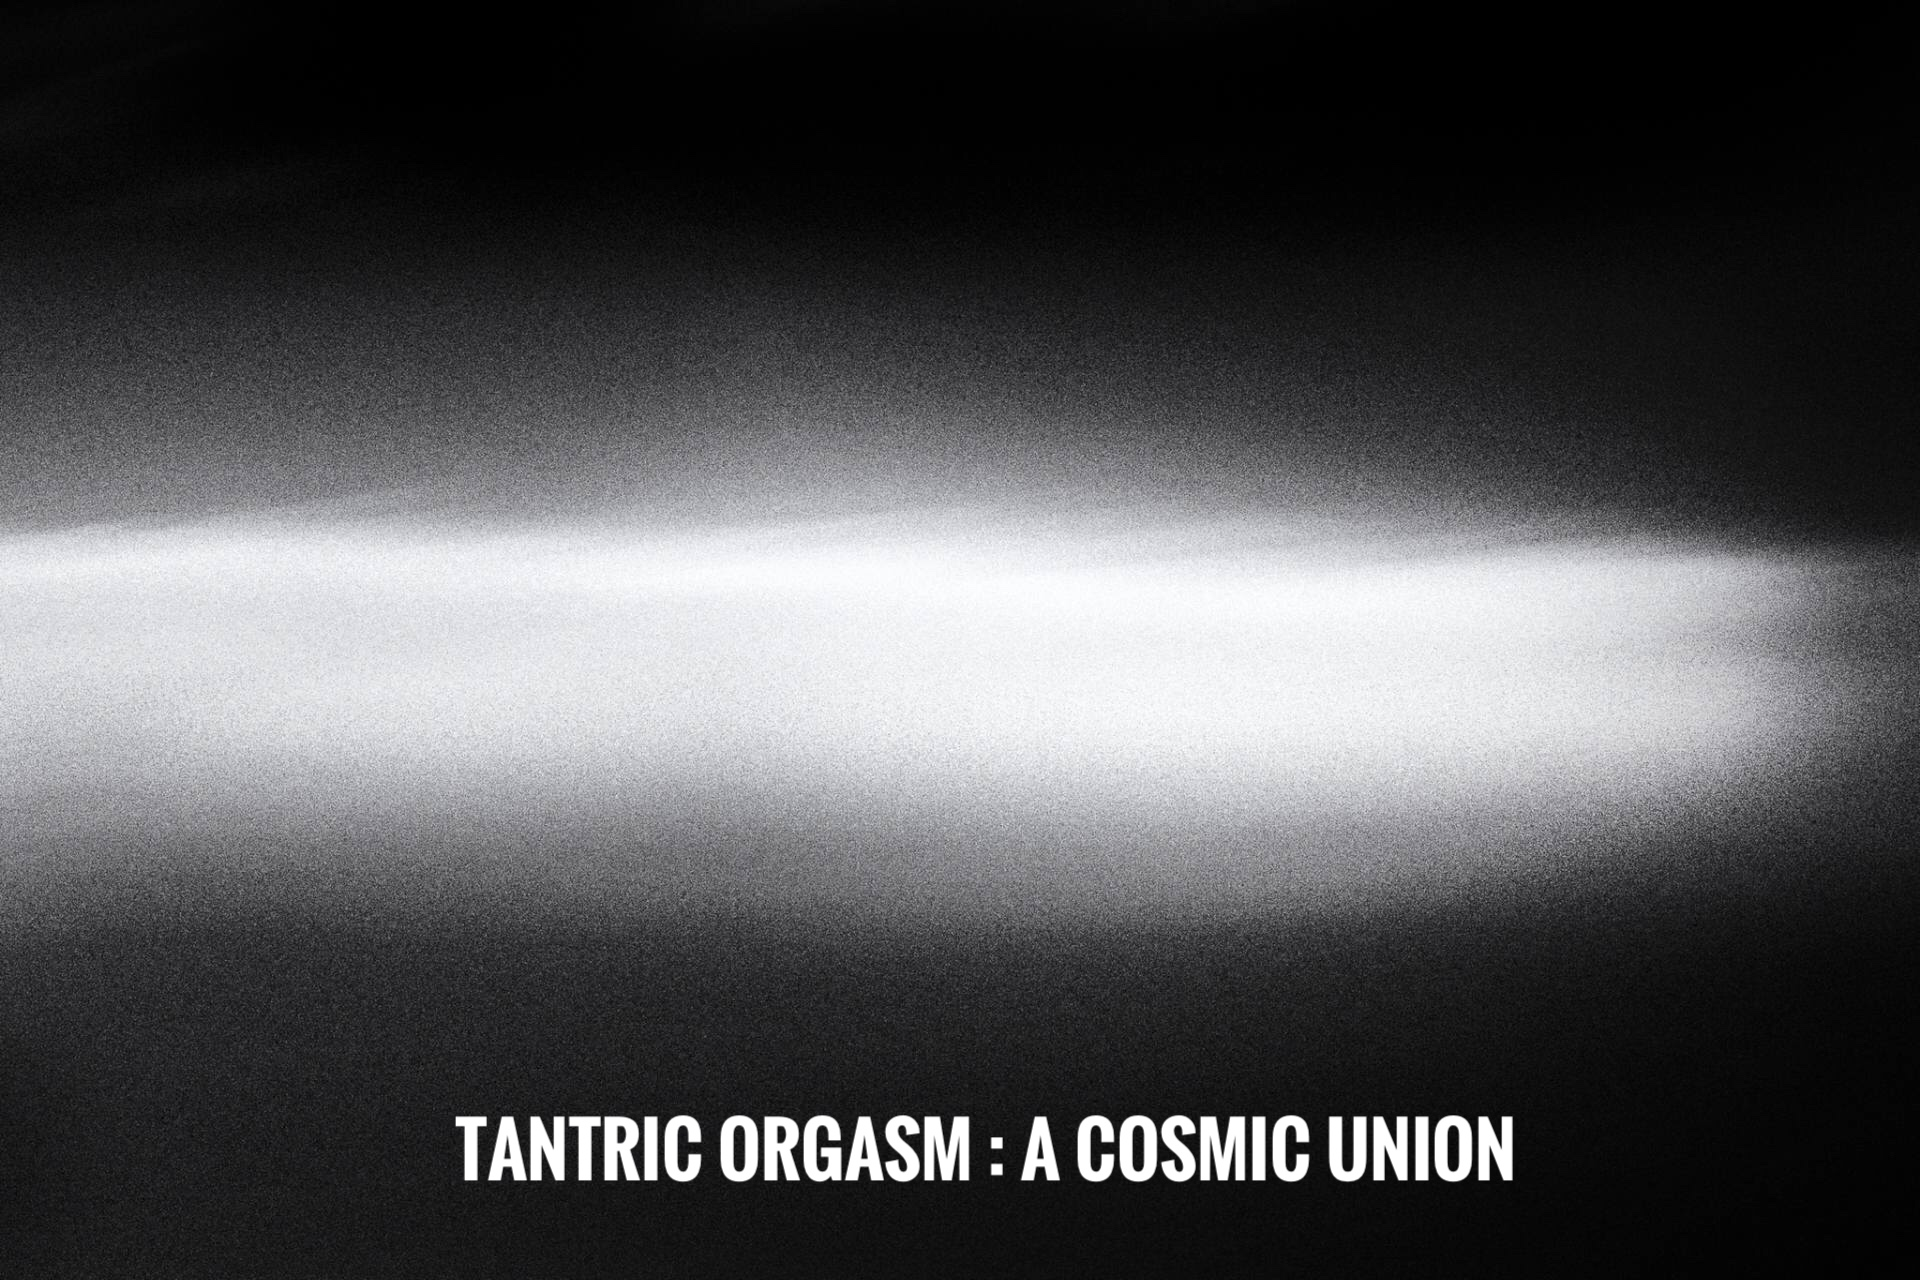 tantric orgasm cosmic union